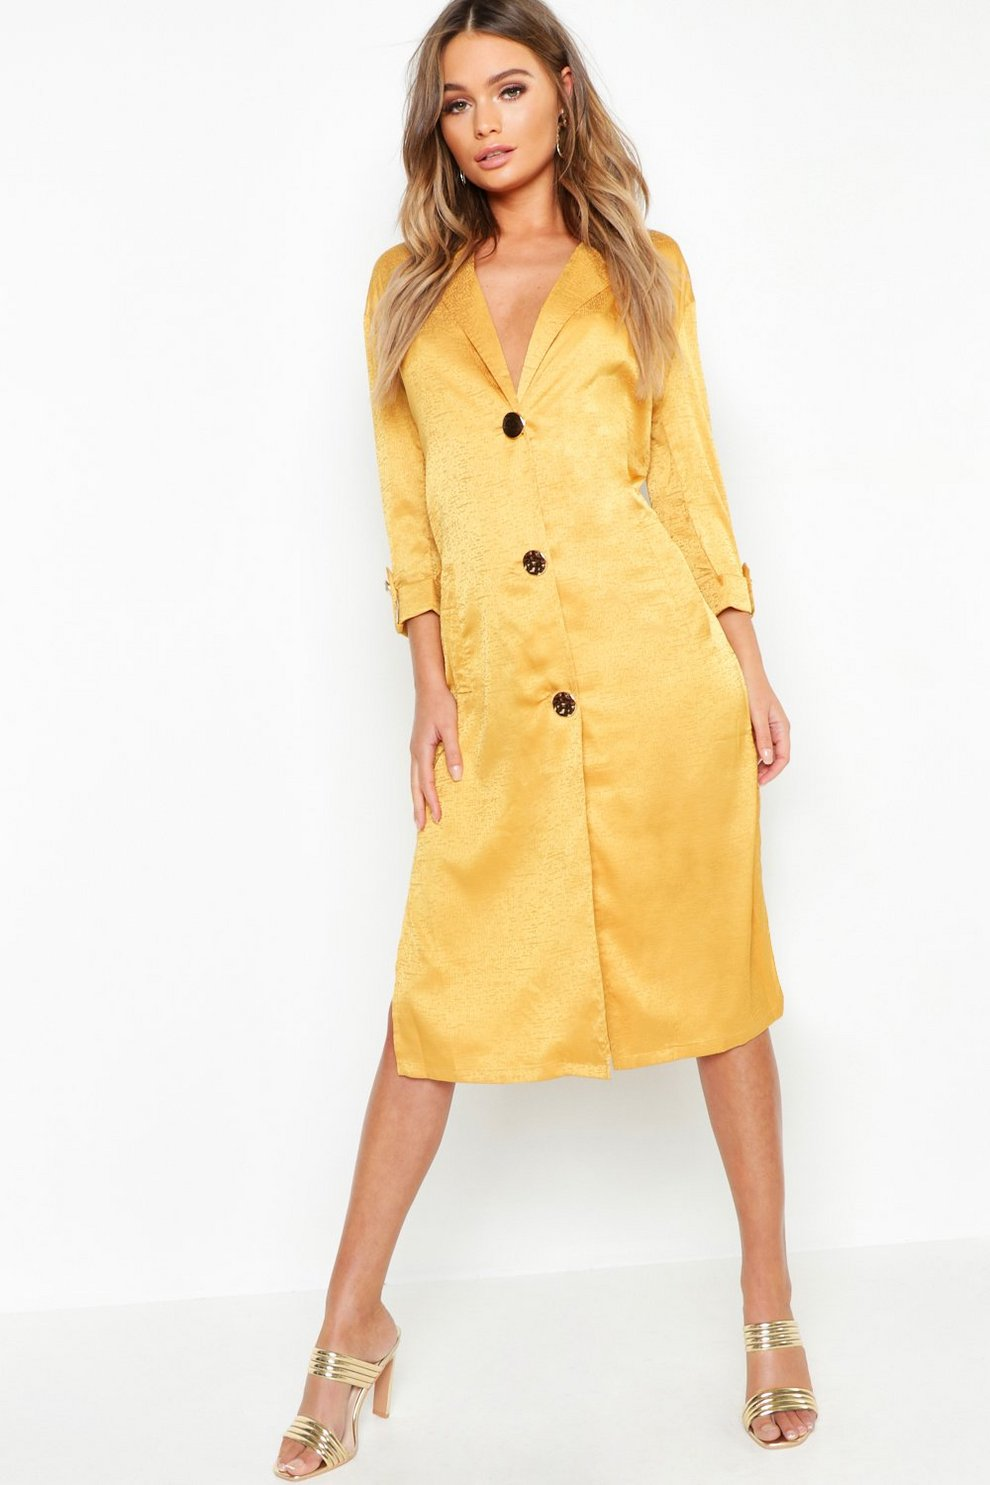 a15e0ce13ee1f Womens Mustard Button Front Matte Satin Jacquard Blazer Dress. Hover to zoom